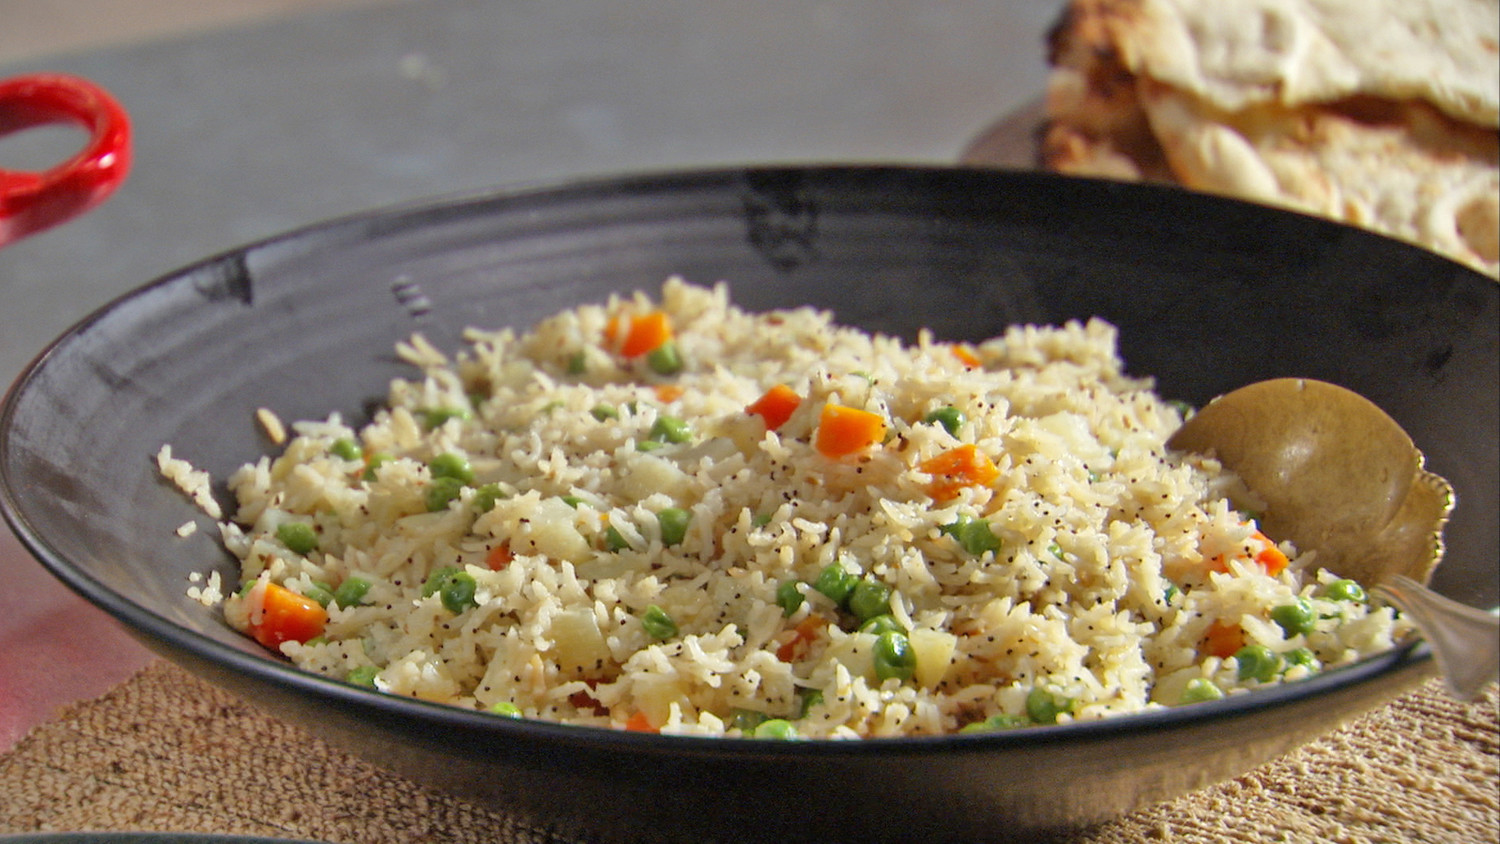 Vegetable biryani recipe video martha stewart forumfinder Images